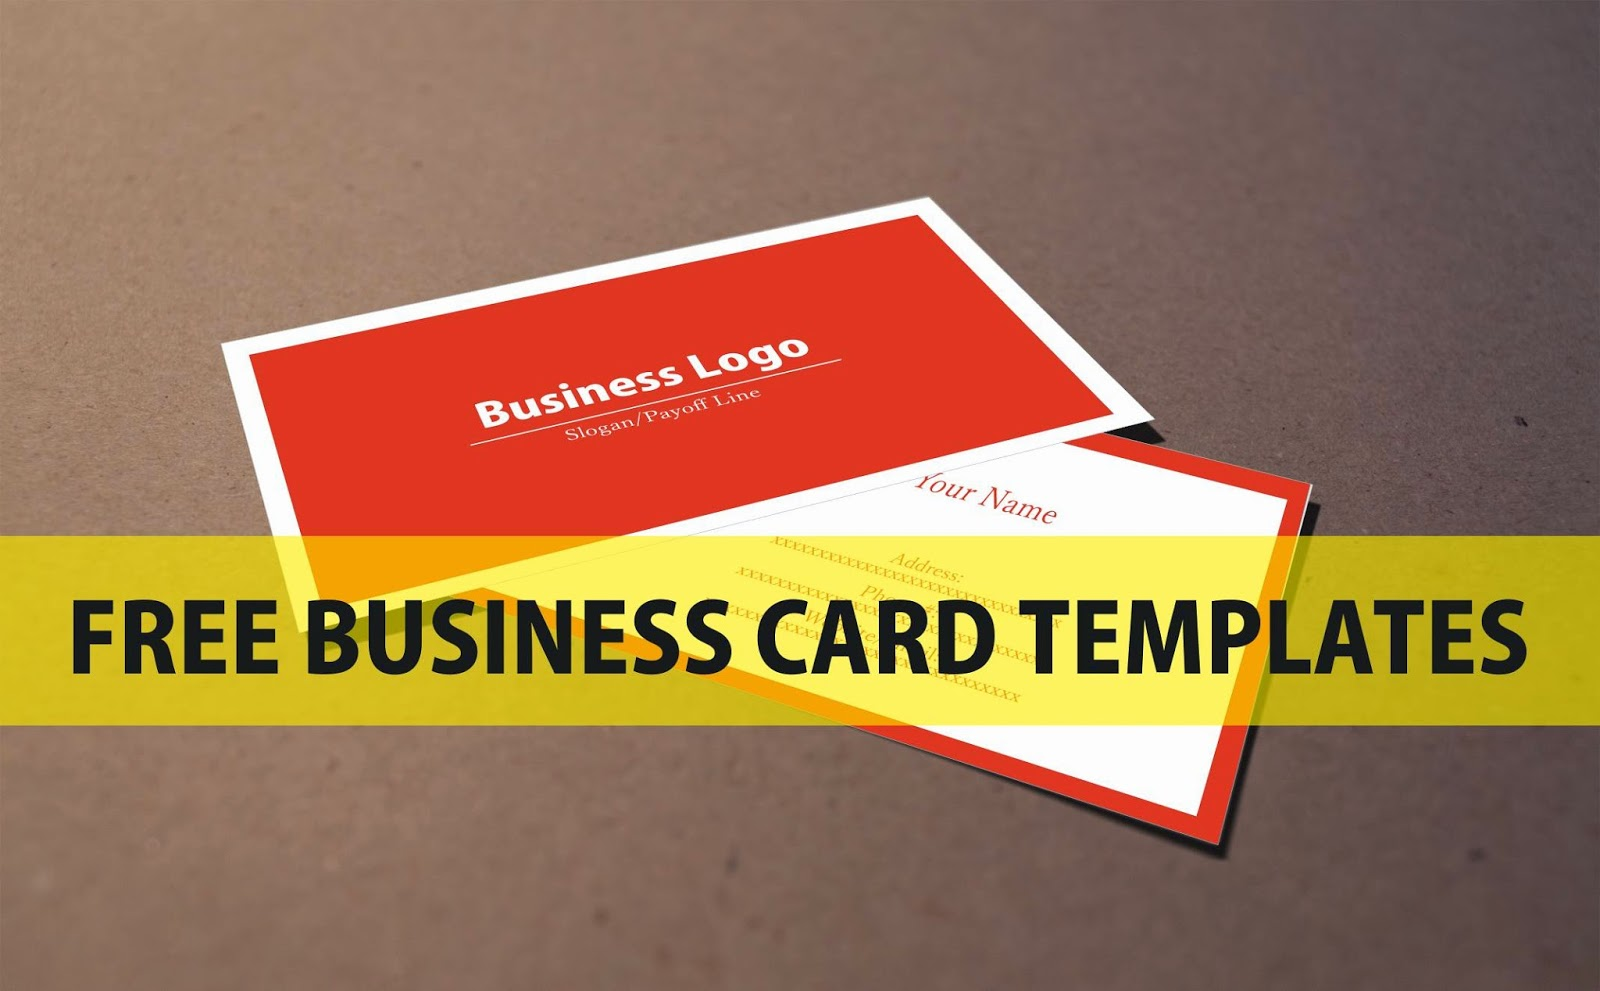 Templates for business cards free etamemibawa templates for business cards free accmission Images